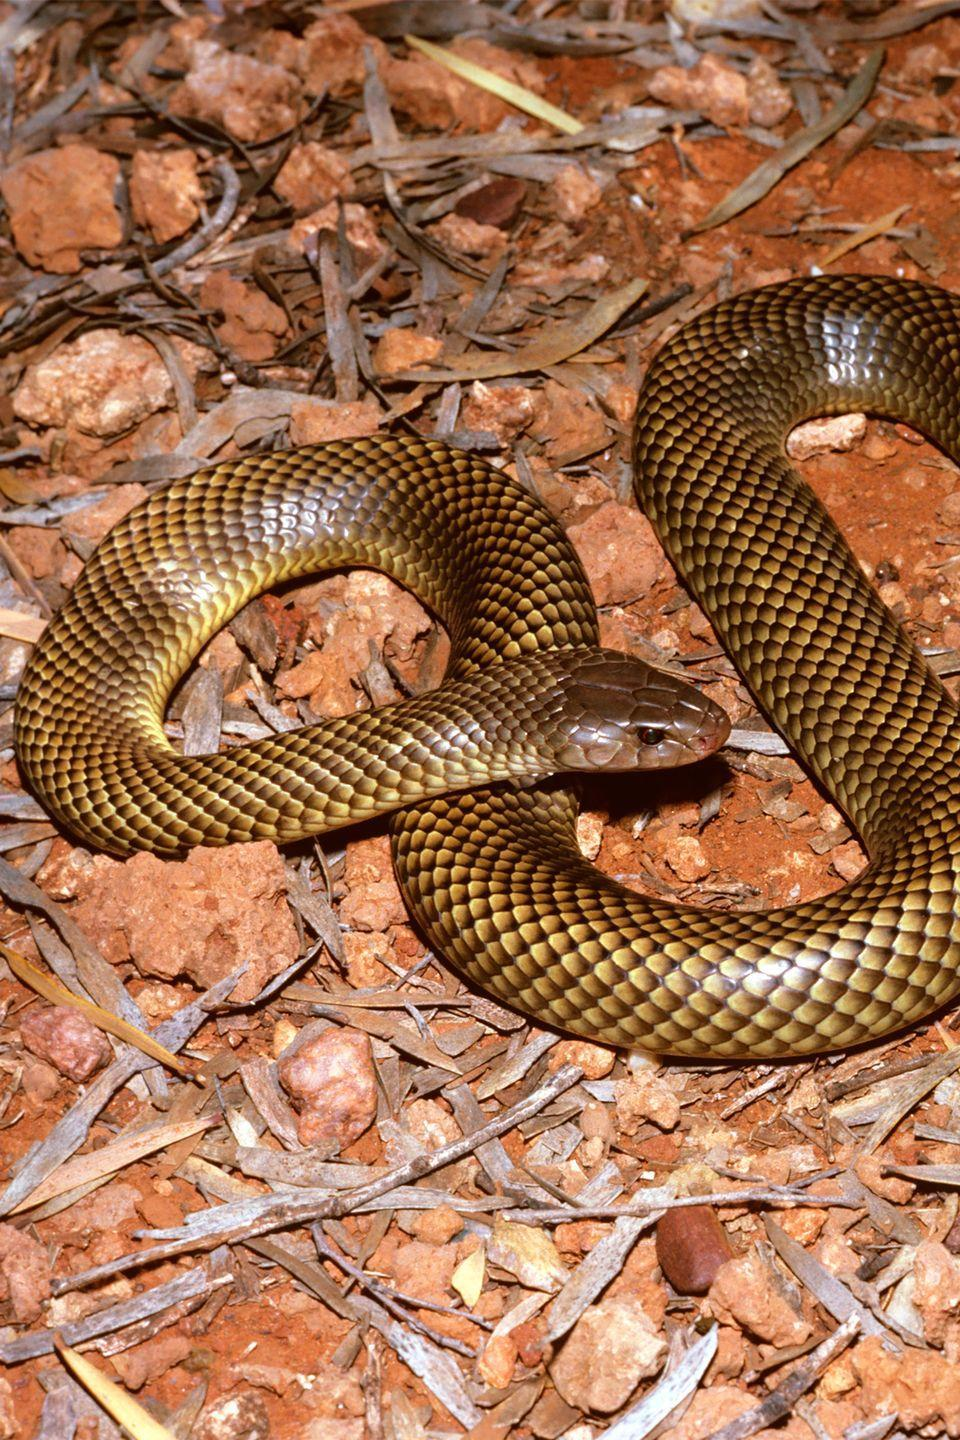 <p>You've likely seen videos of scientists squeezing snakes' venom into glass beakers. According to researchers, the snake that contains the most venom in volume is the King Brown, which can provide 1.3 grams of dry venom from a single milking.</p>